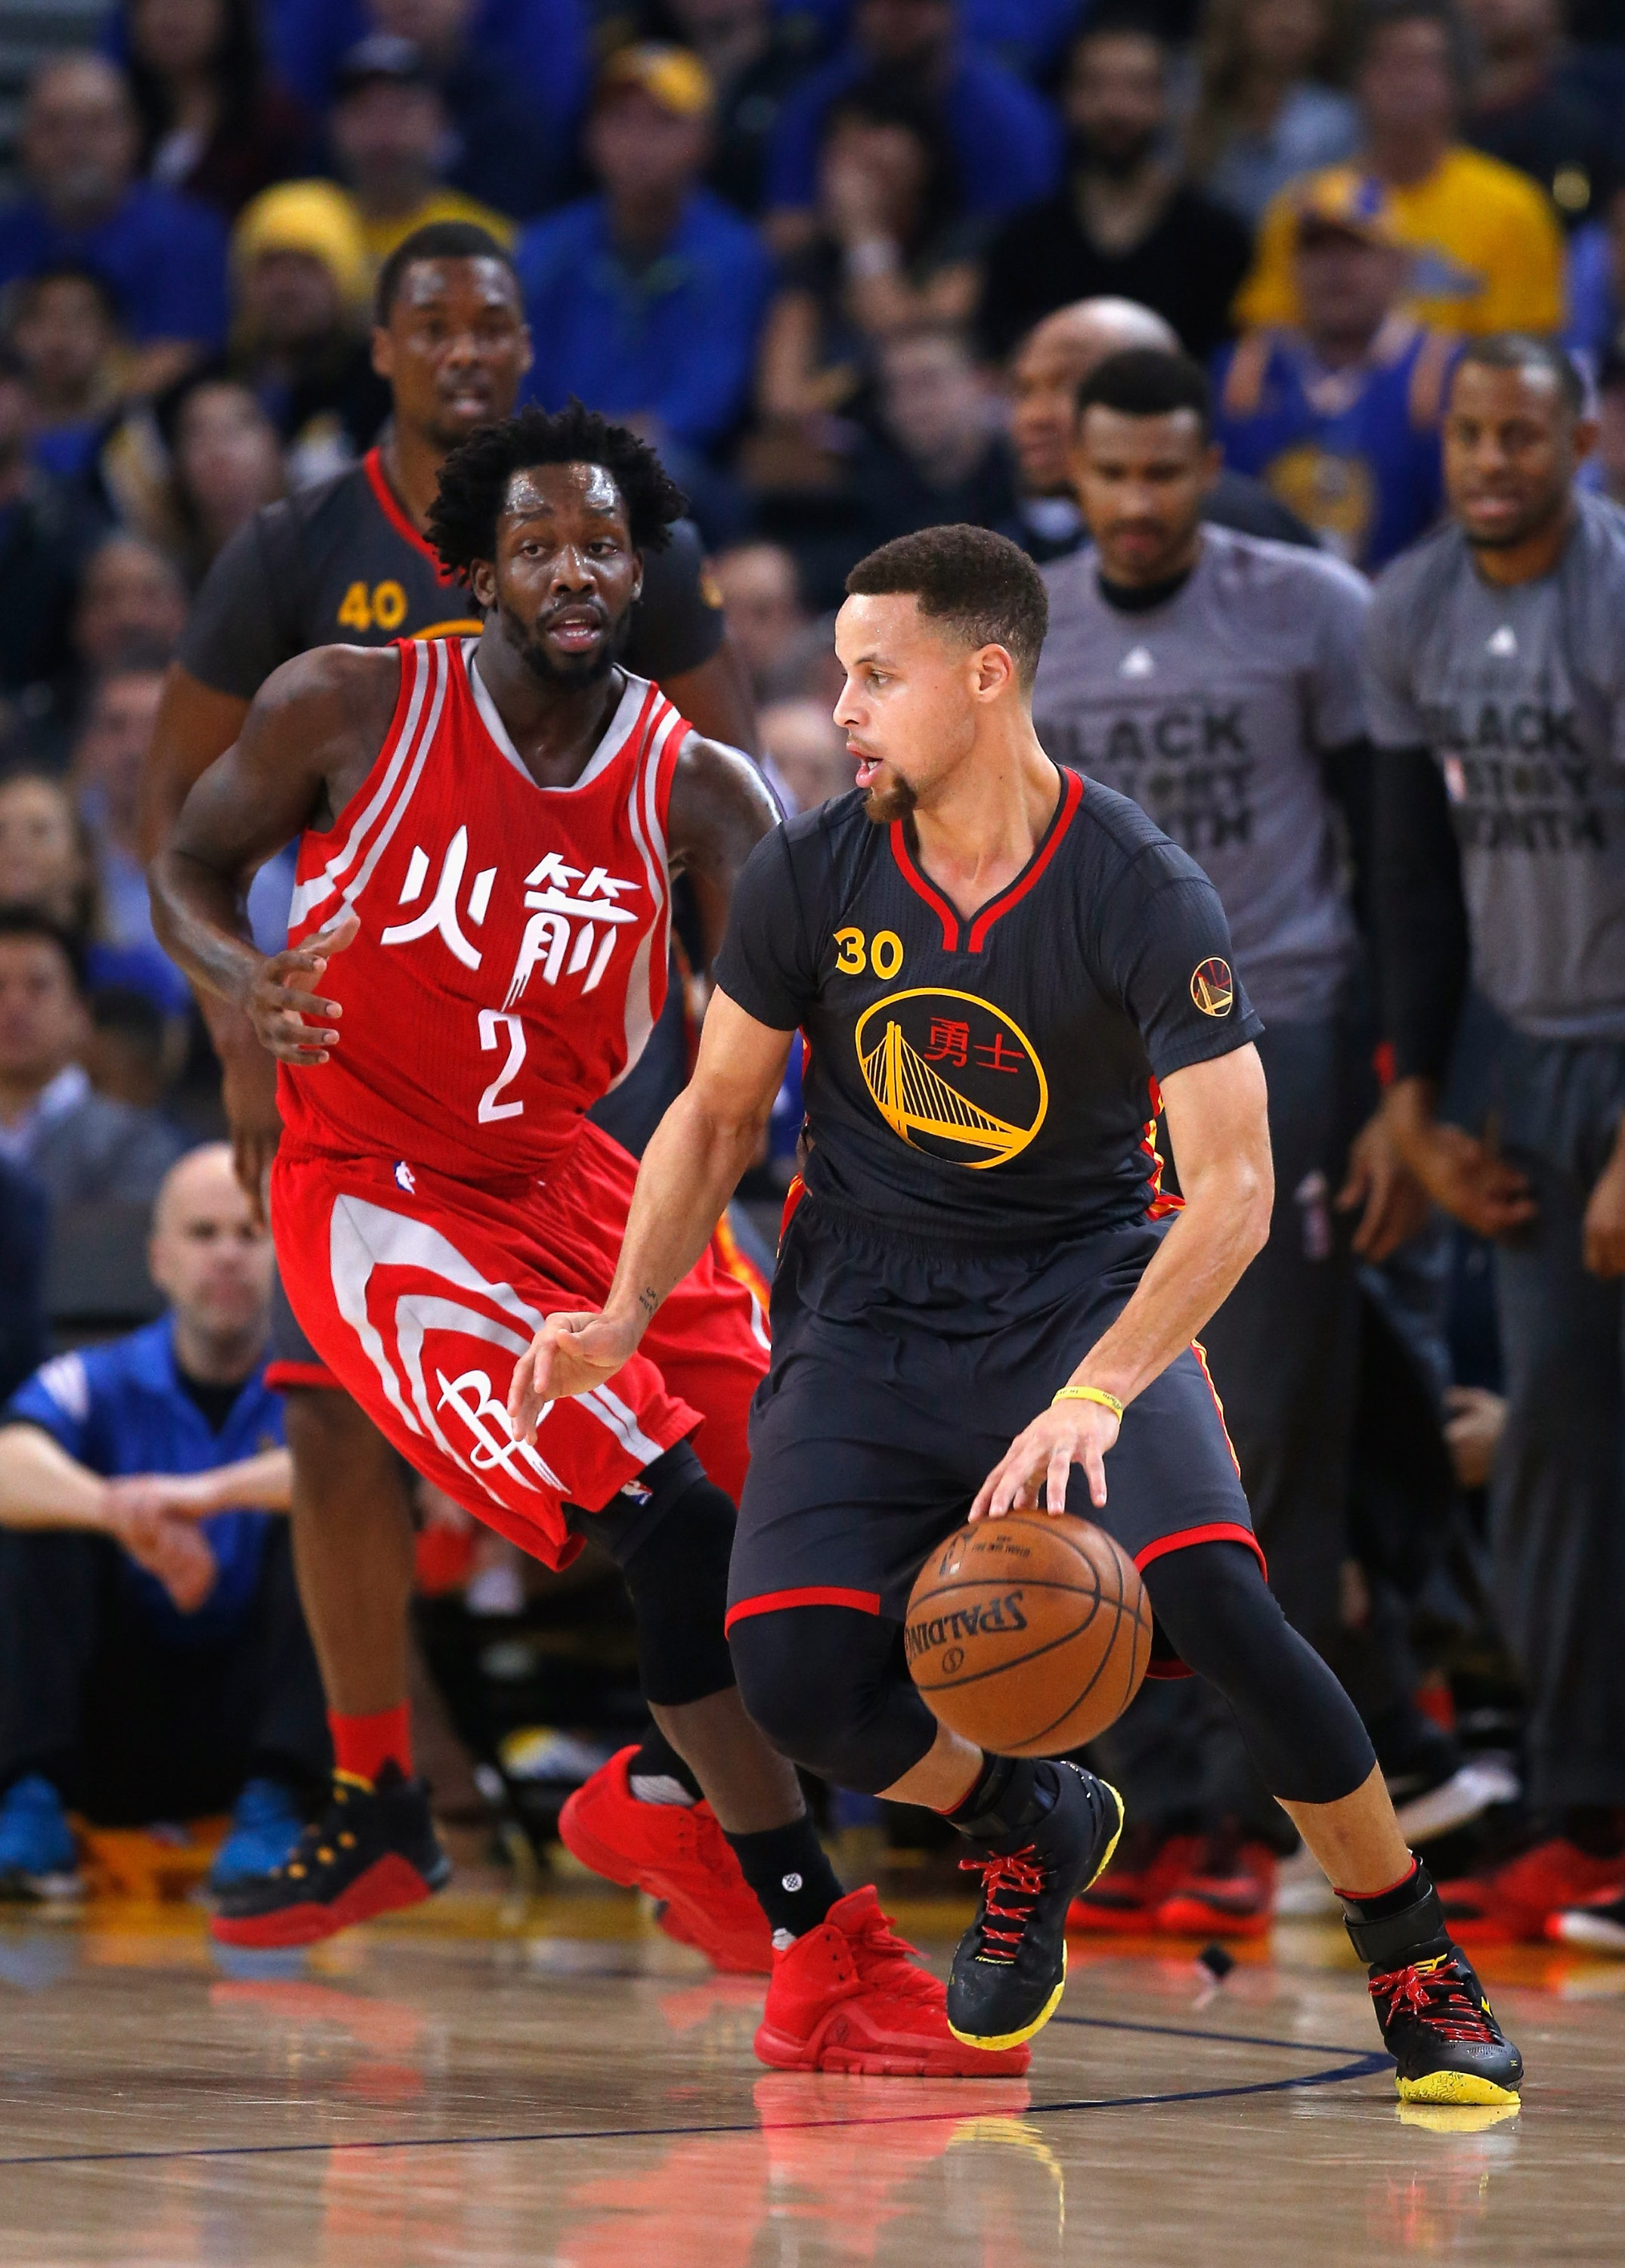 Warriors turn it on late, surge past impressive Rockets